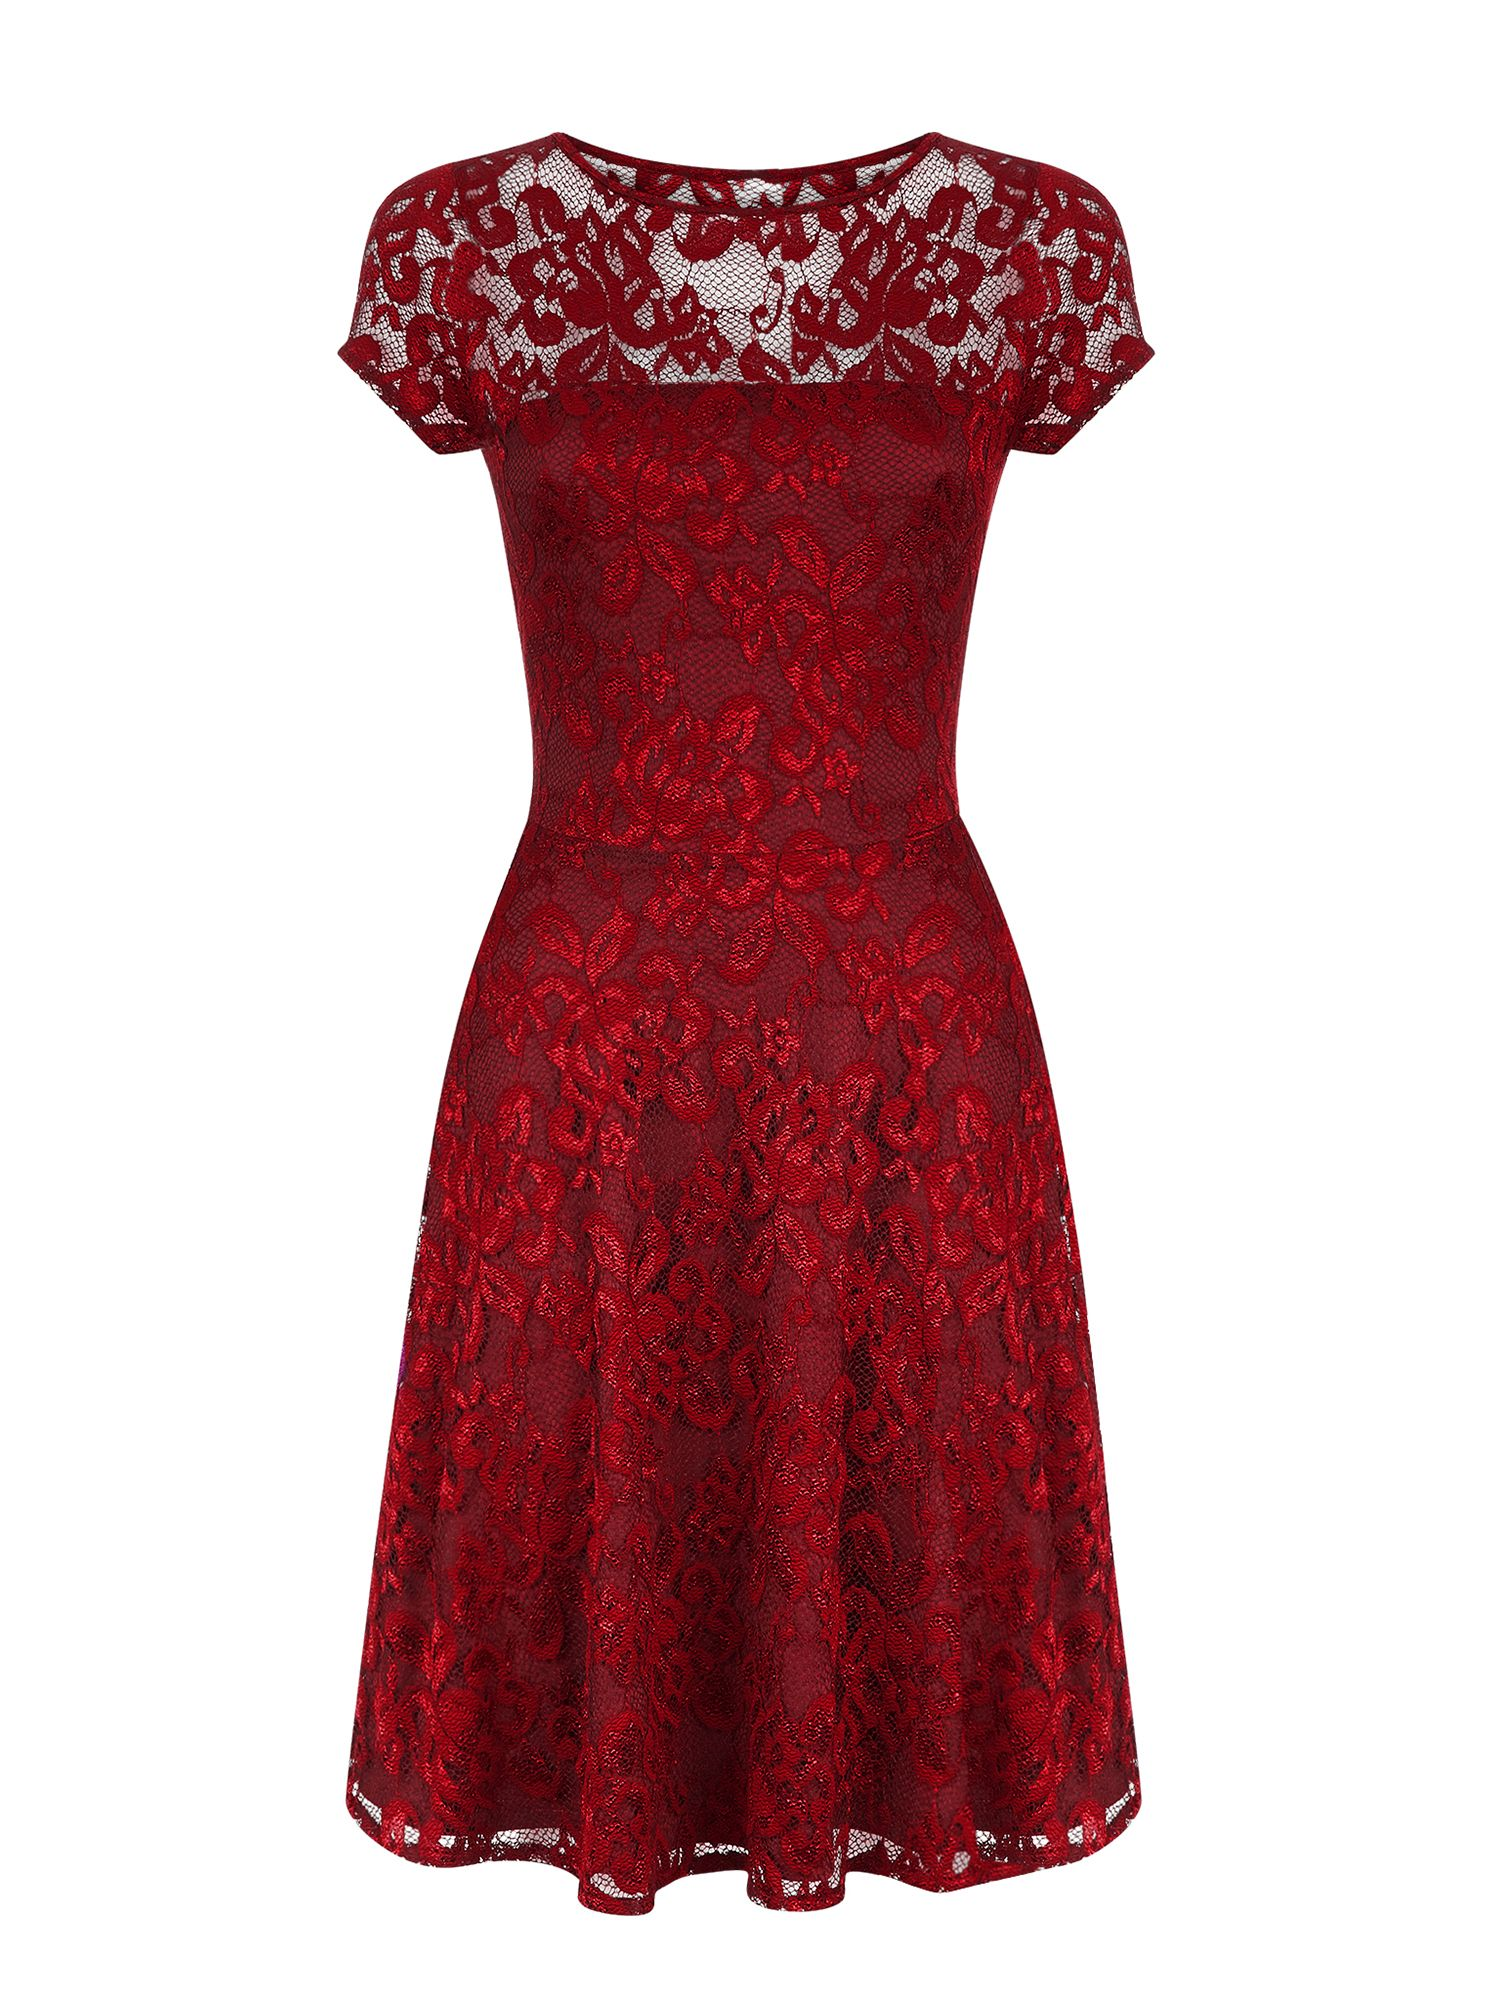 HotSquash Lace Fit n Flare Dress with Thermal Lini, Red